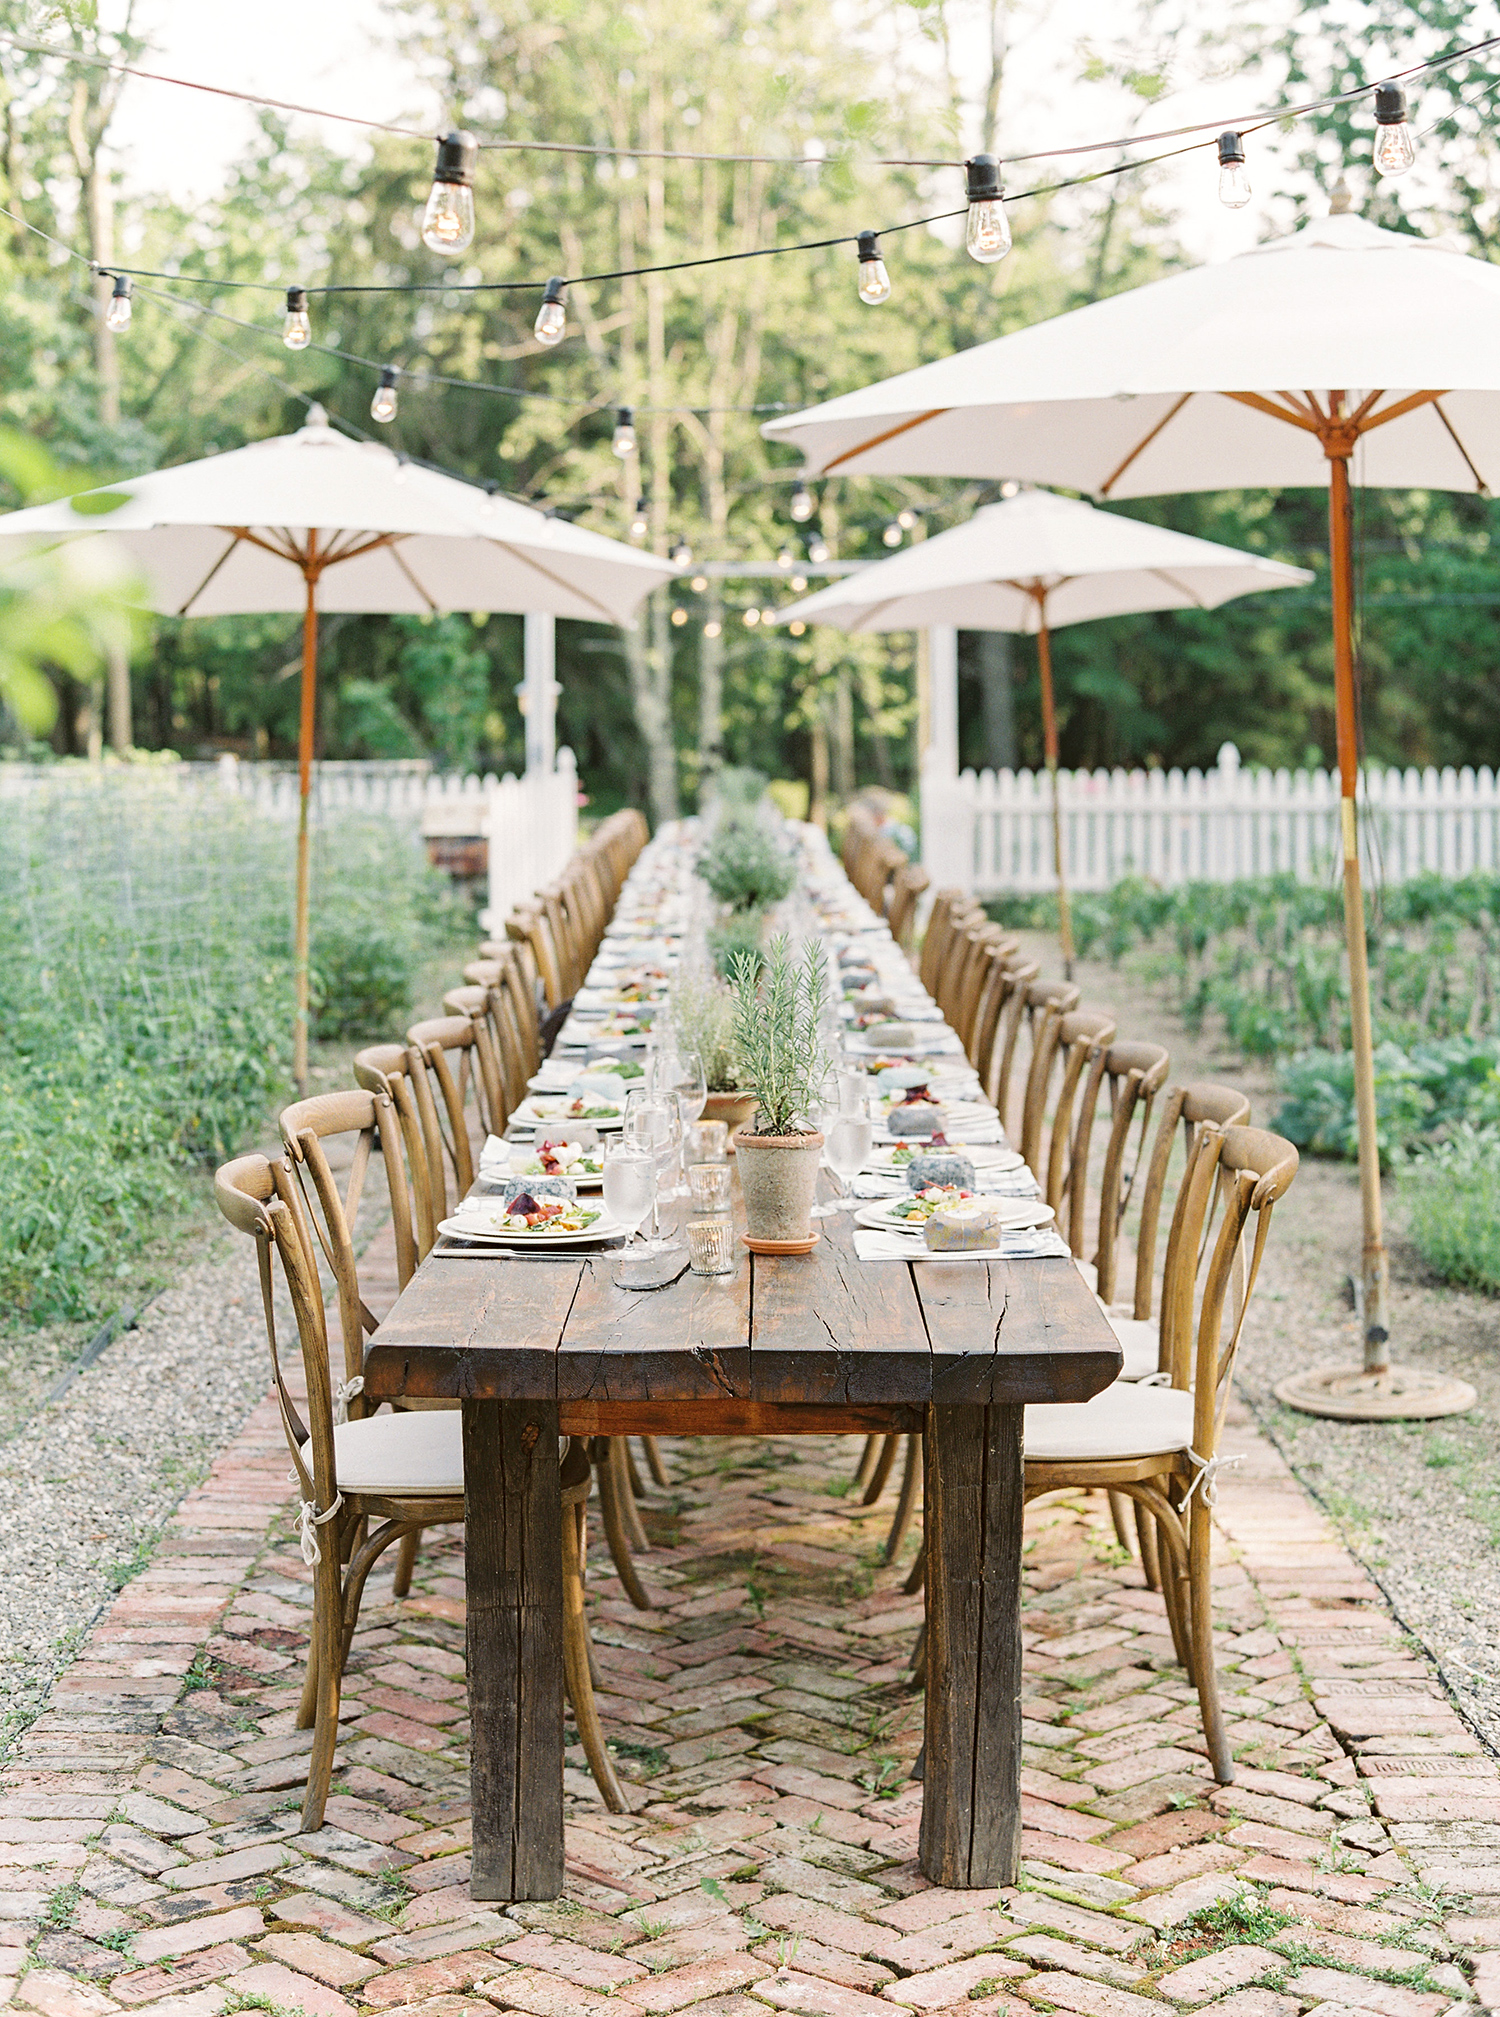 5 Rehearsal Dinner Ideas for Spring